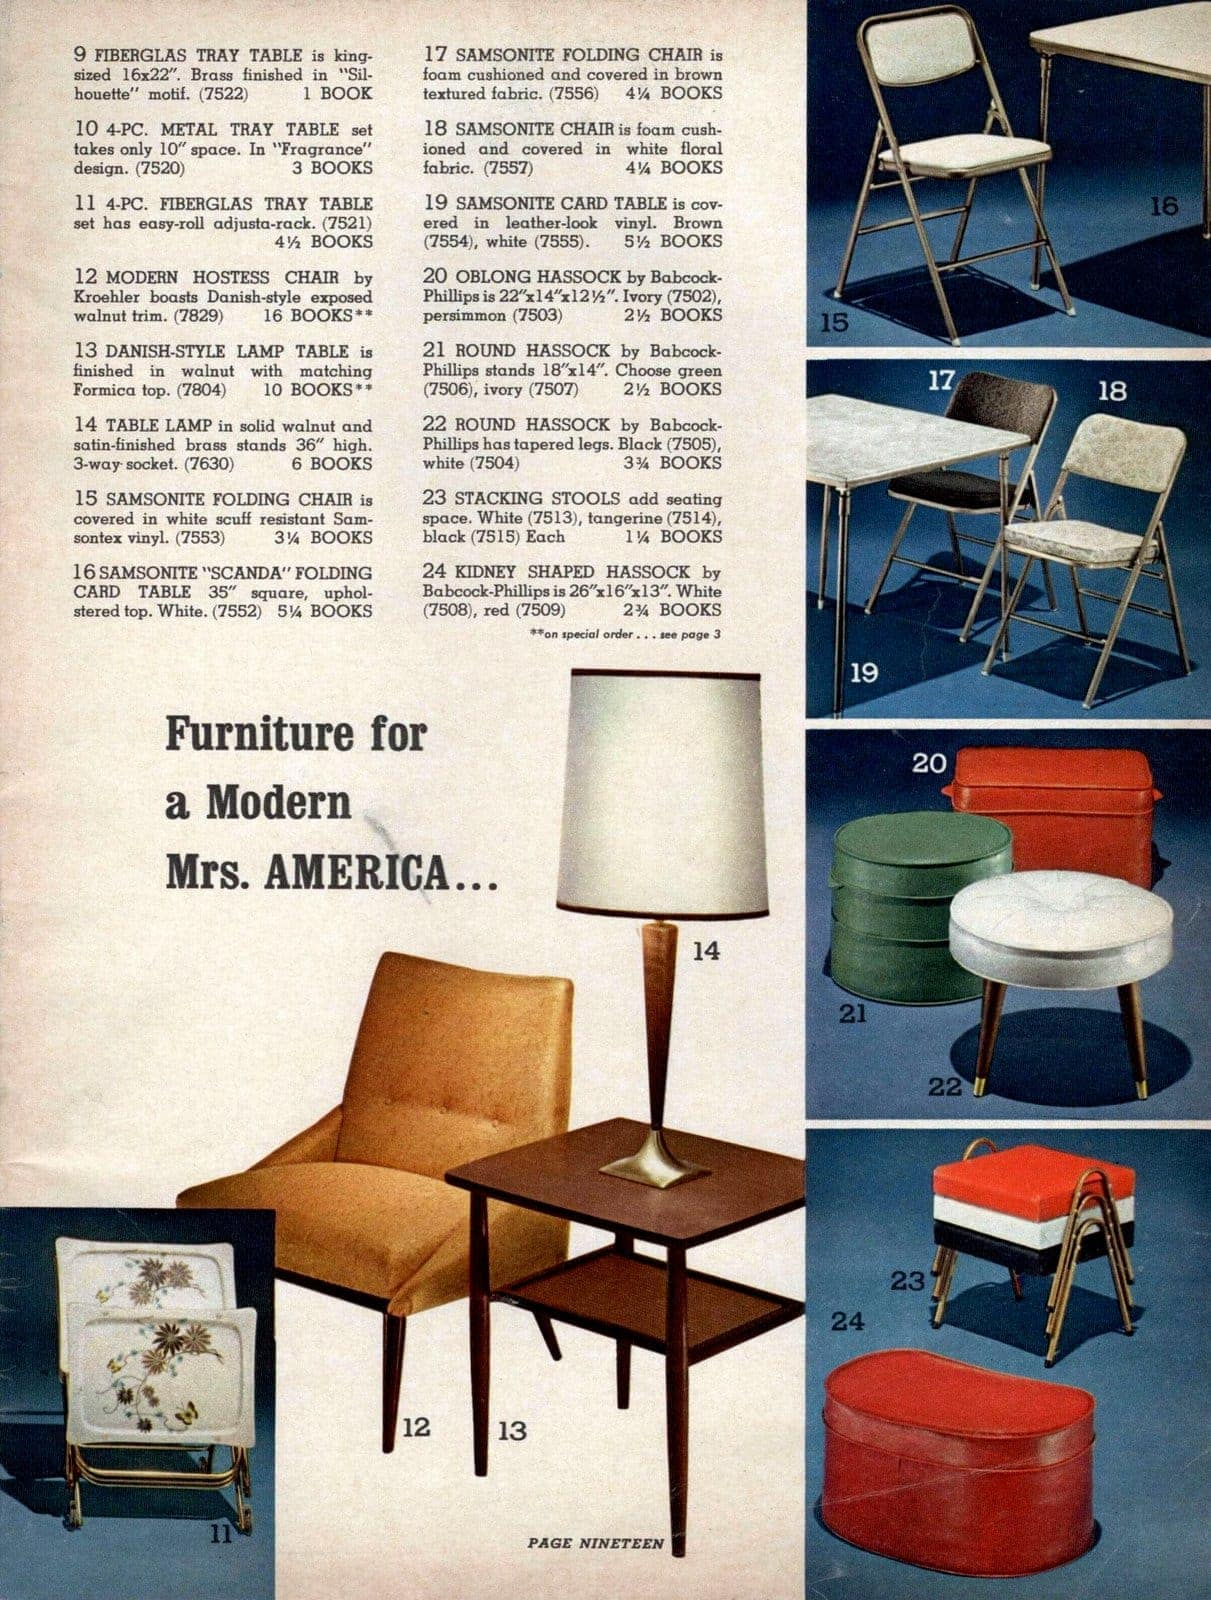 Vintage mid-century furniture - folding chairs, stools, hassocks, card tables and more